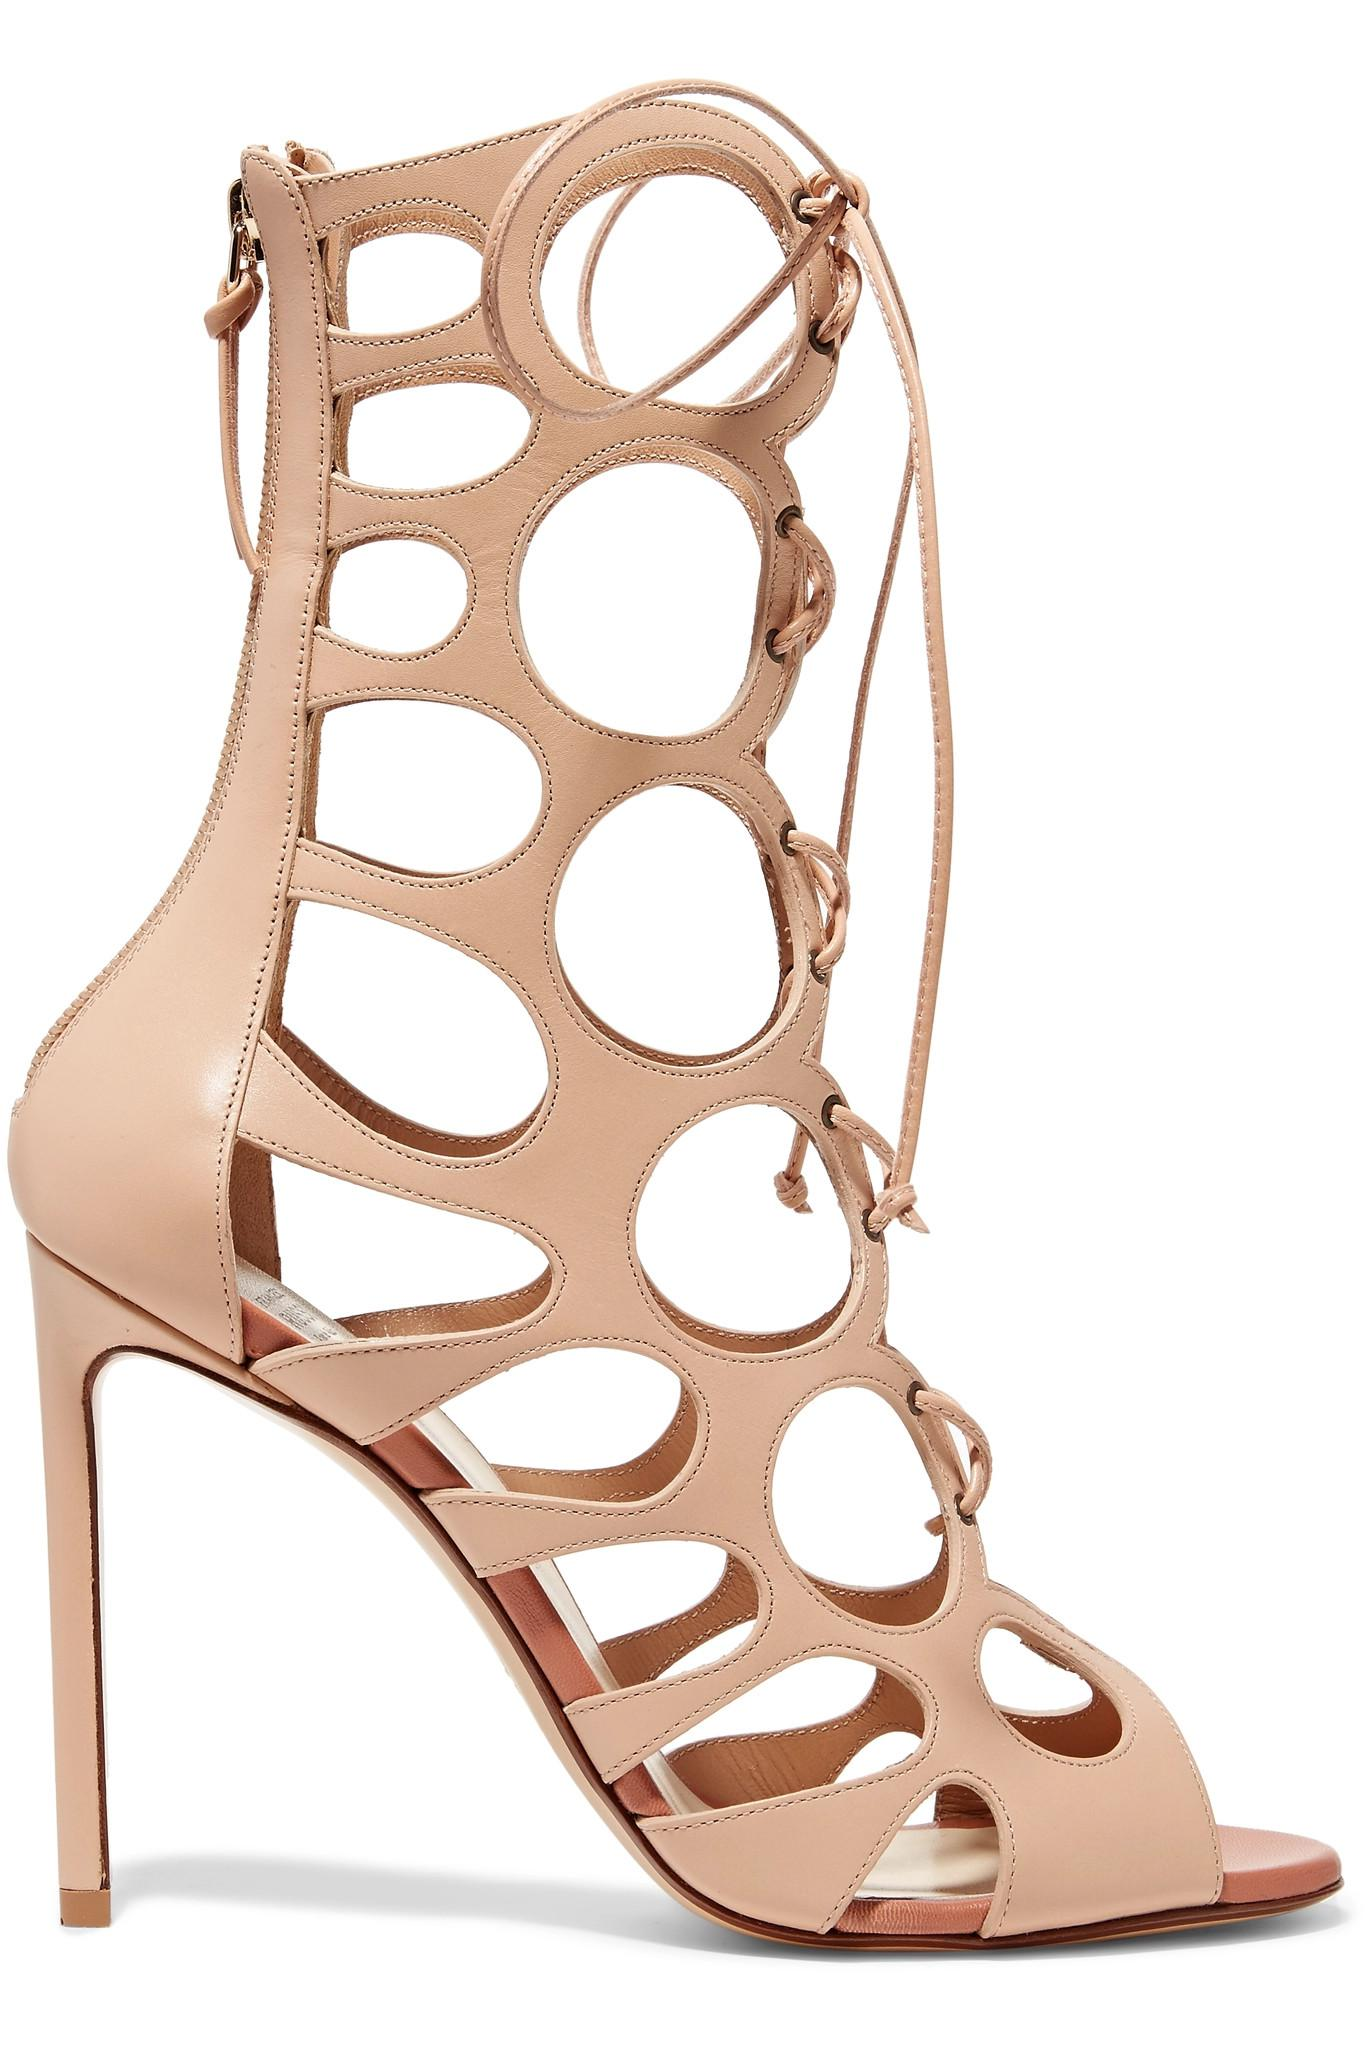 Cutout Leather Sandals - Beige Francesco Russo